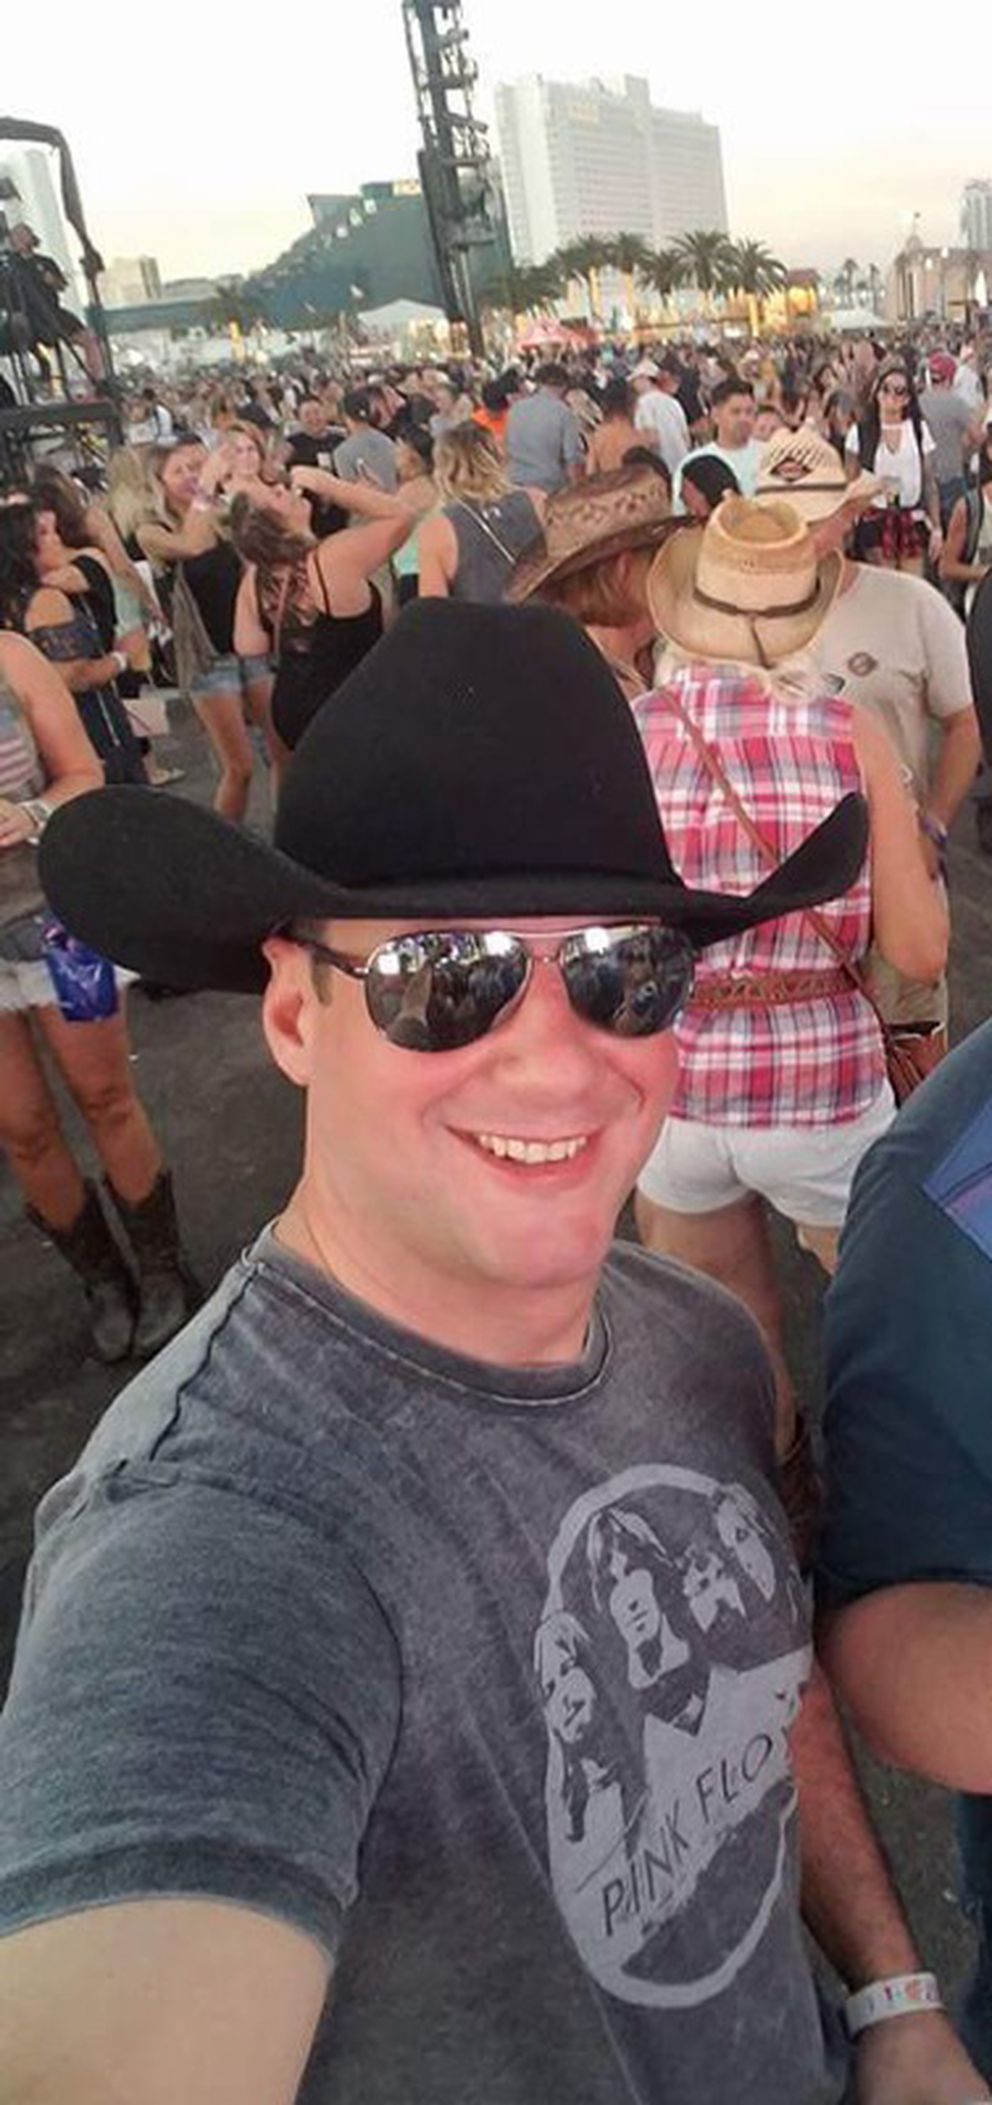 Adrian Murfitt, 35, was a victim of the Las Vegas shooter Stephen Paddock, Oct.1 , 2017. He made this selfie at the Oct. 1 concert. (Courtesy Avonna Murfitt)